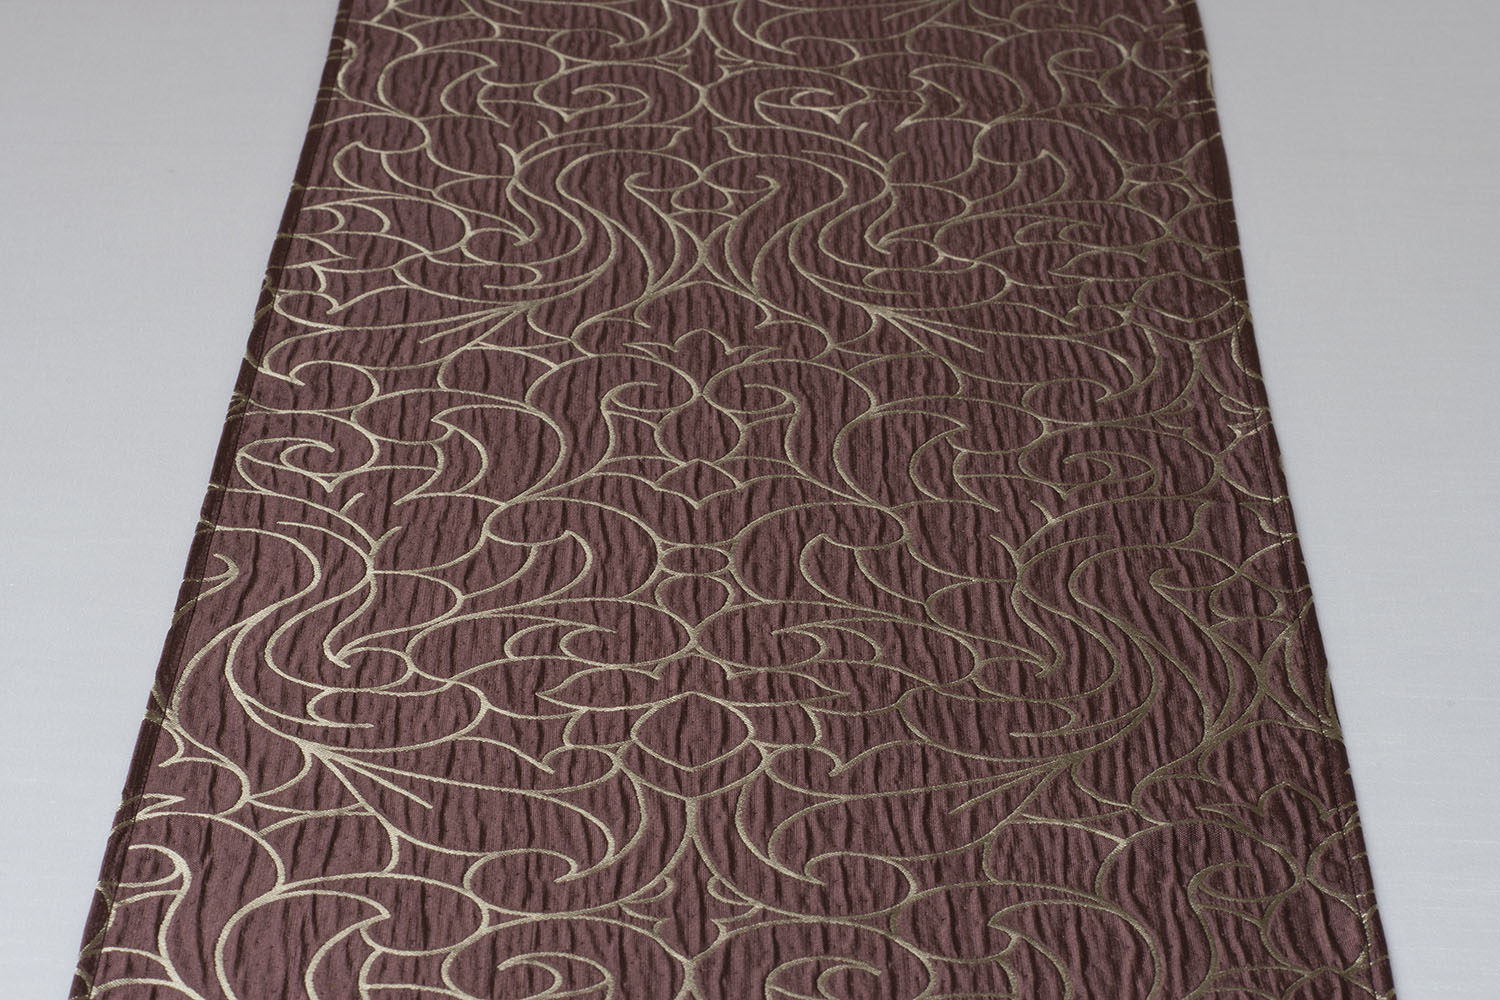 textured swirl pattern burgundy ground iridescent taupe accent centerpiece table runner standard mirror side ikea inch round covers ceramic patio rustic furniture affordable